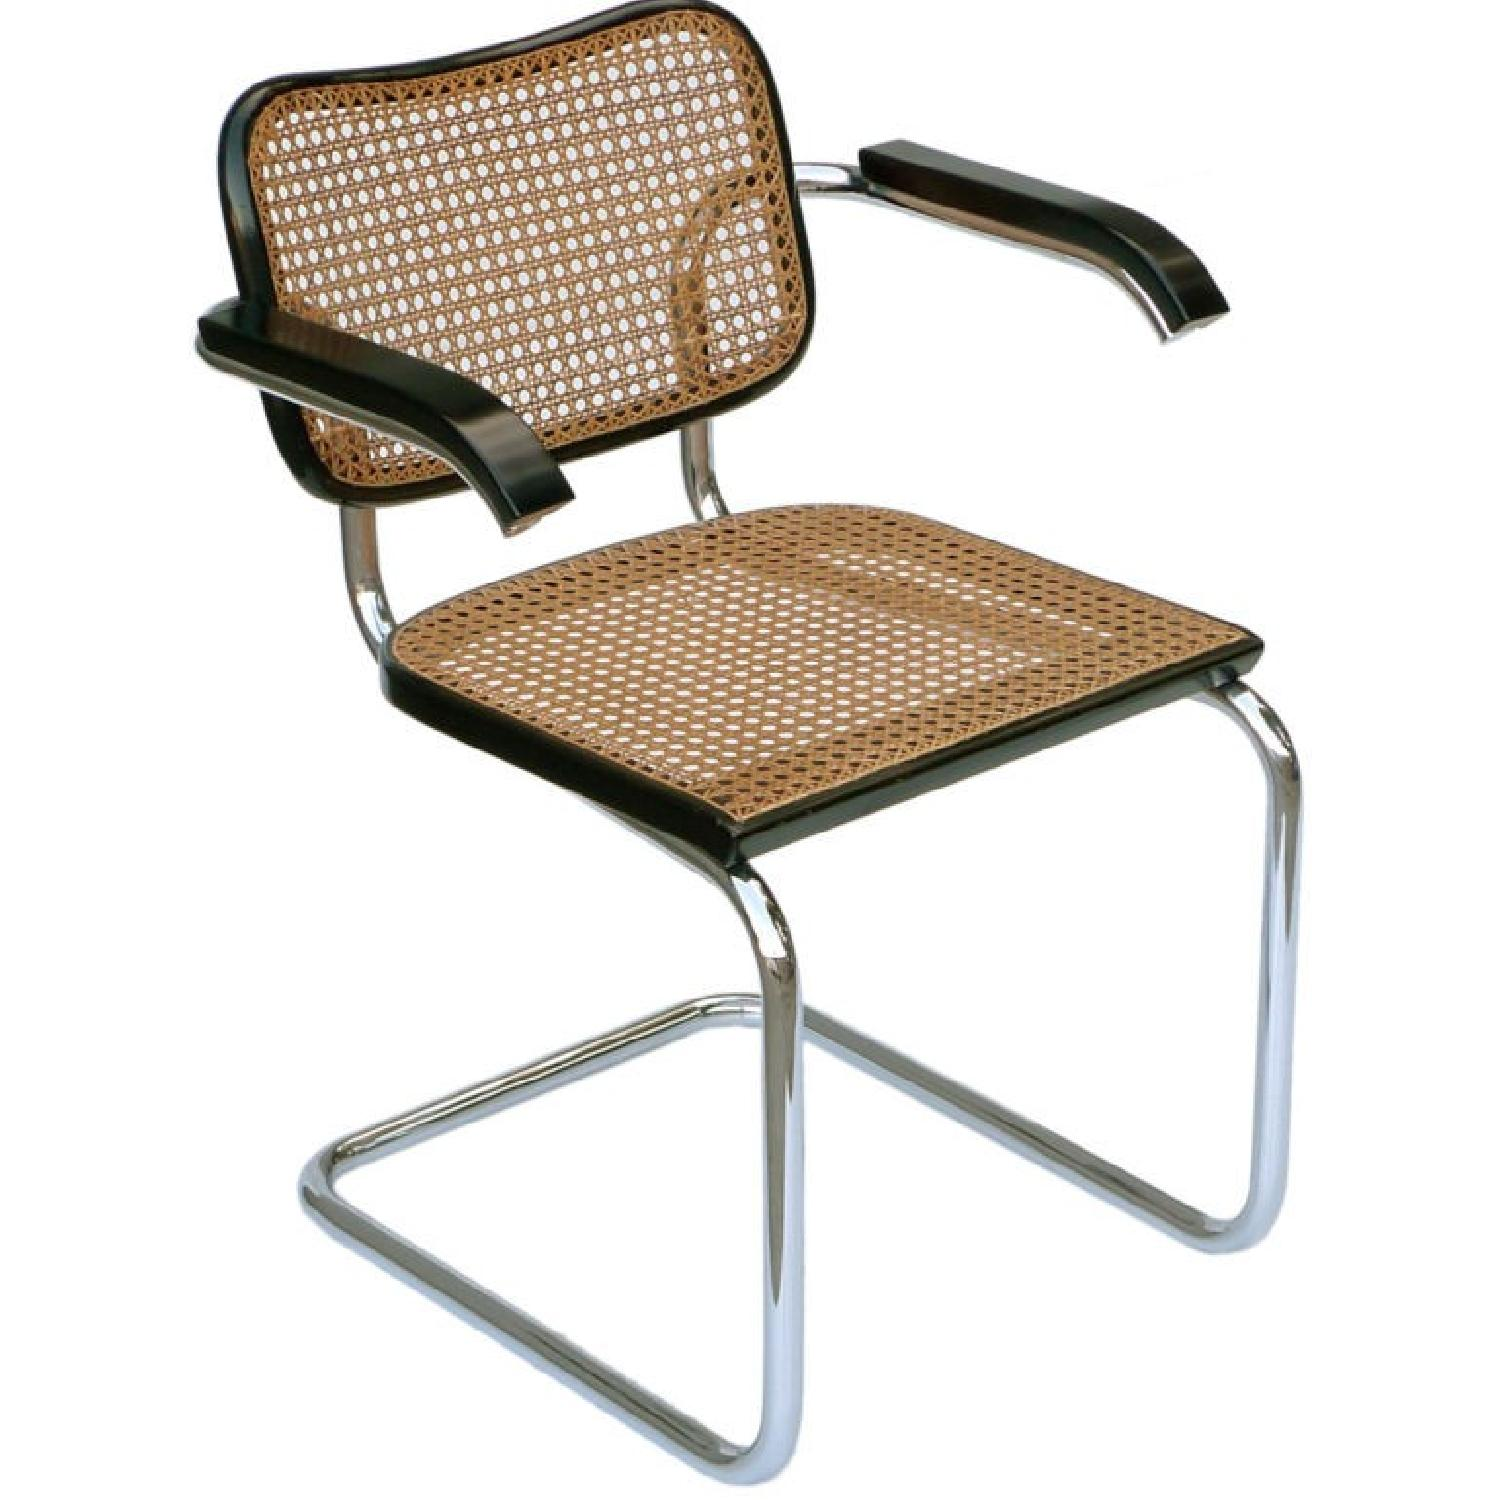 Knoll Cesca Marcel Breuer Cane Chairs In Black ...